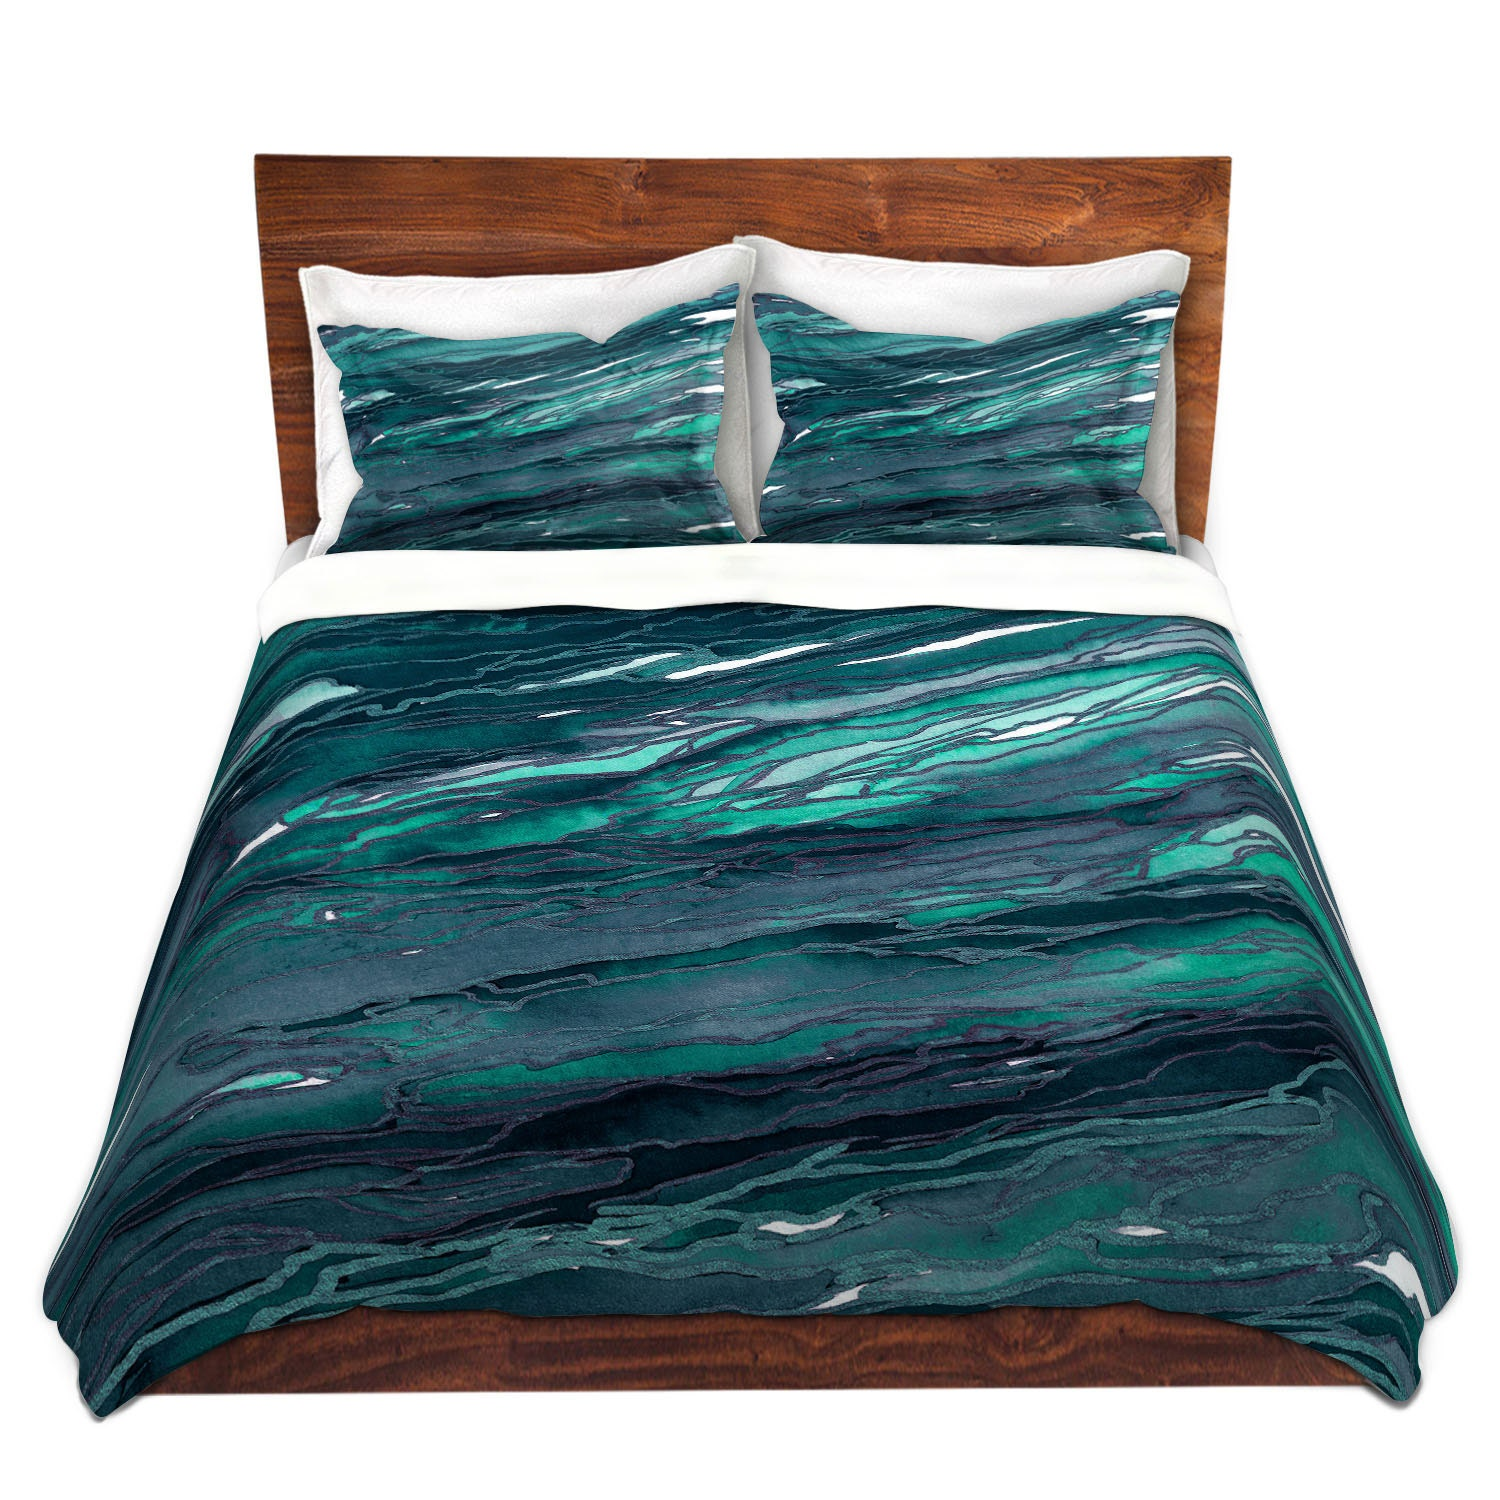 AGATE MAGIC Dark Teal Blue Green Art Marble Duvet Covers